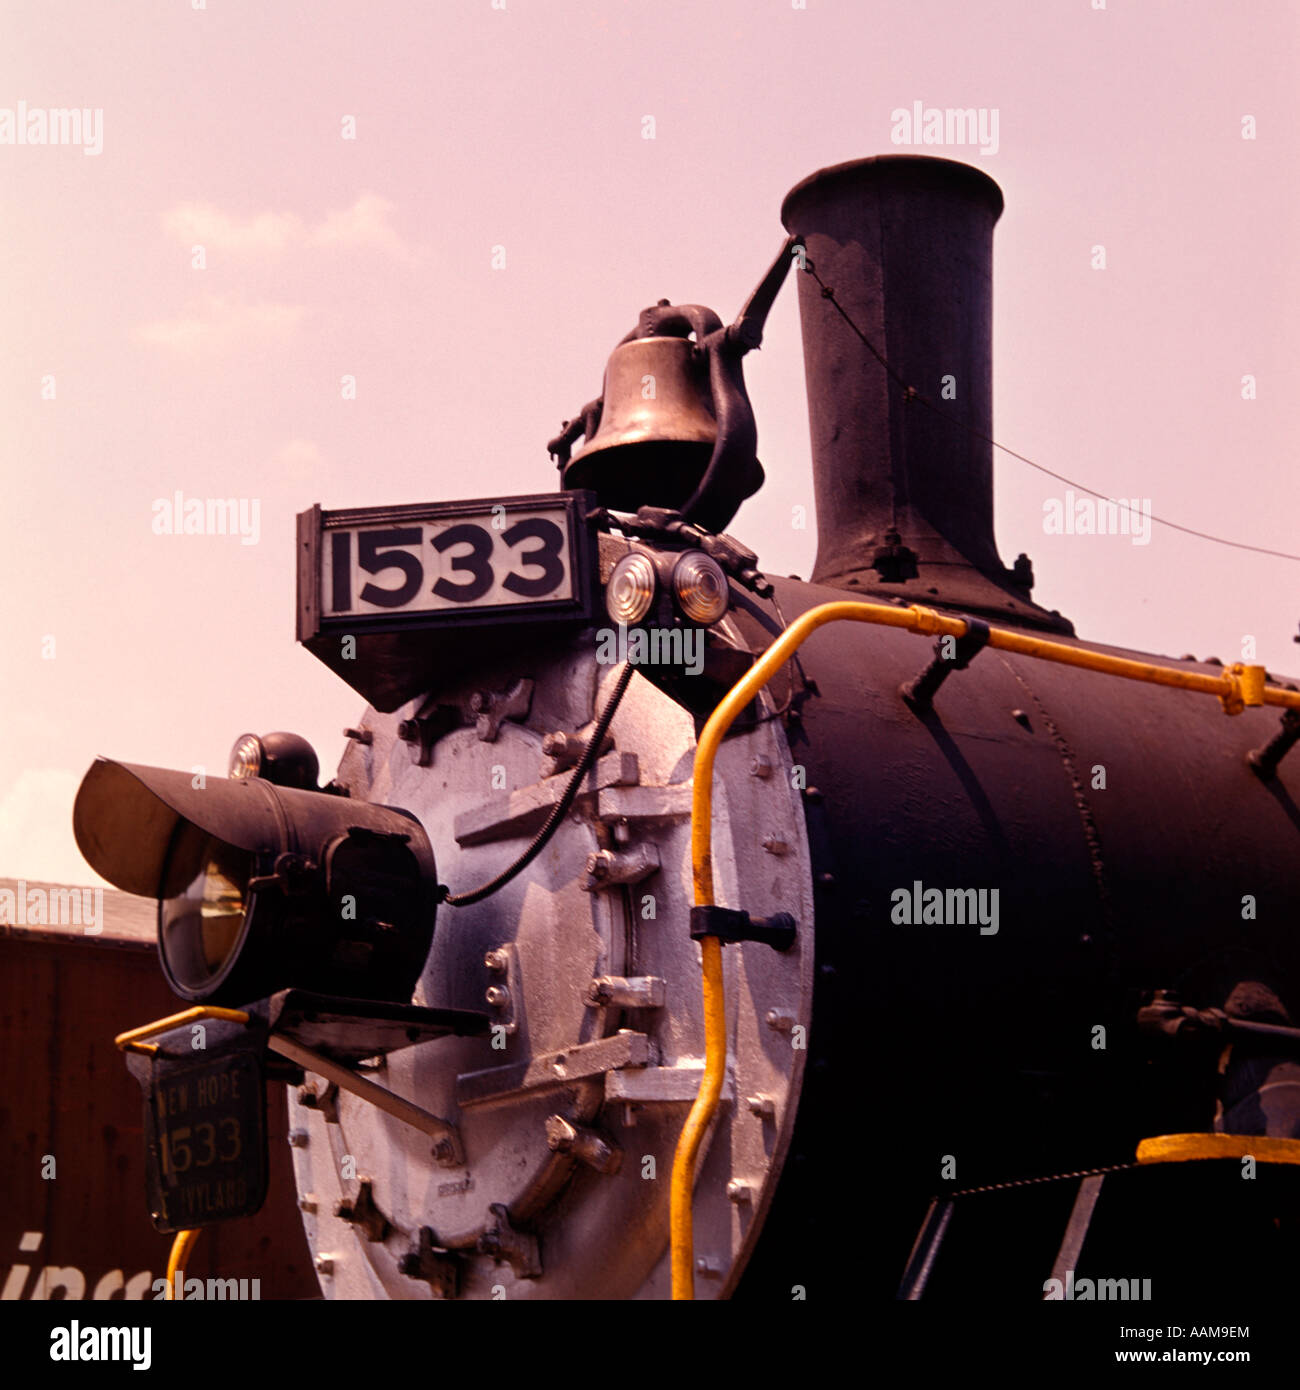 DETAIL OLD TIME STEAM ENGINE LOCOMOTIVE TRAIN NUMBER 1533 STACK BELL RETRO - Stock Image